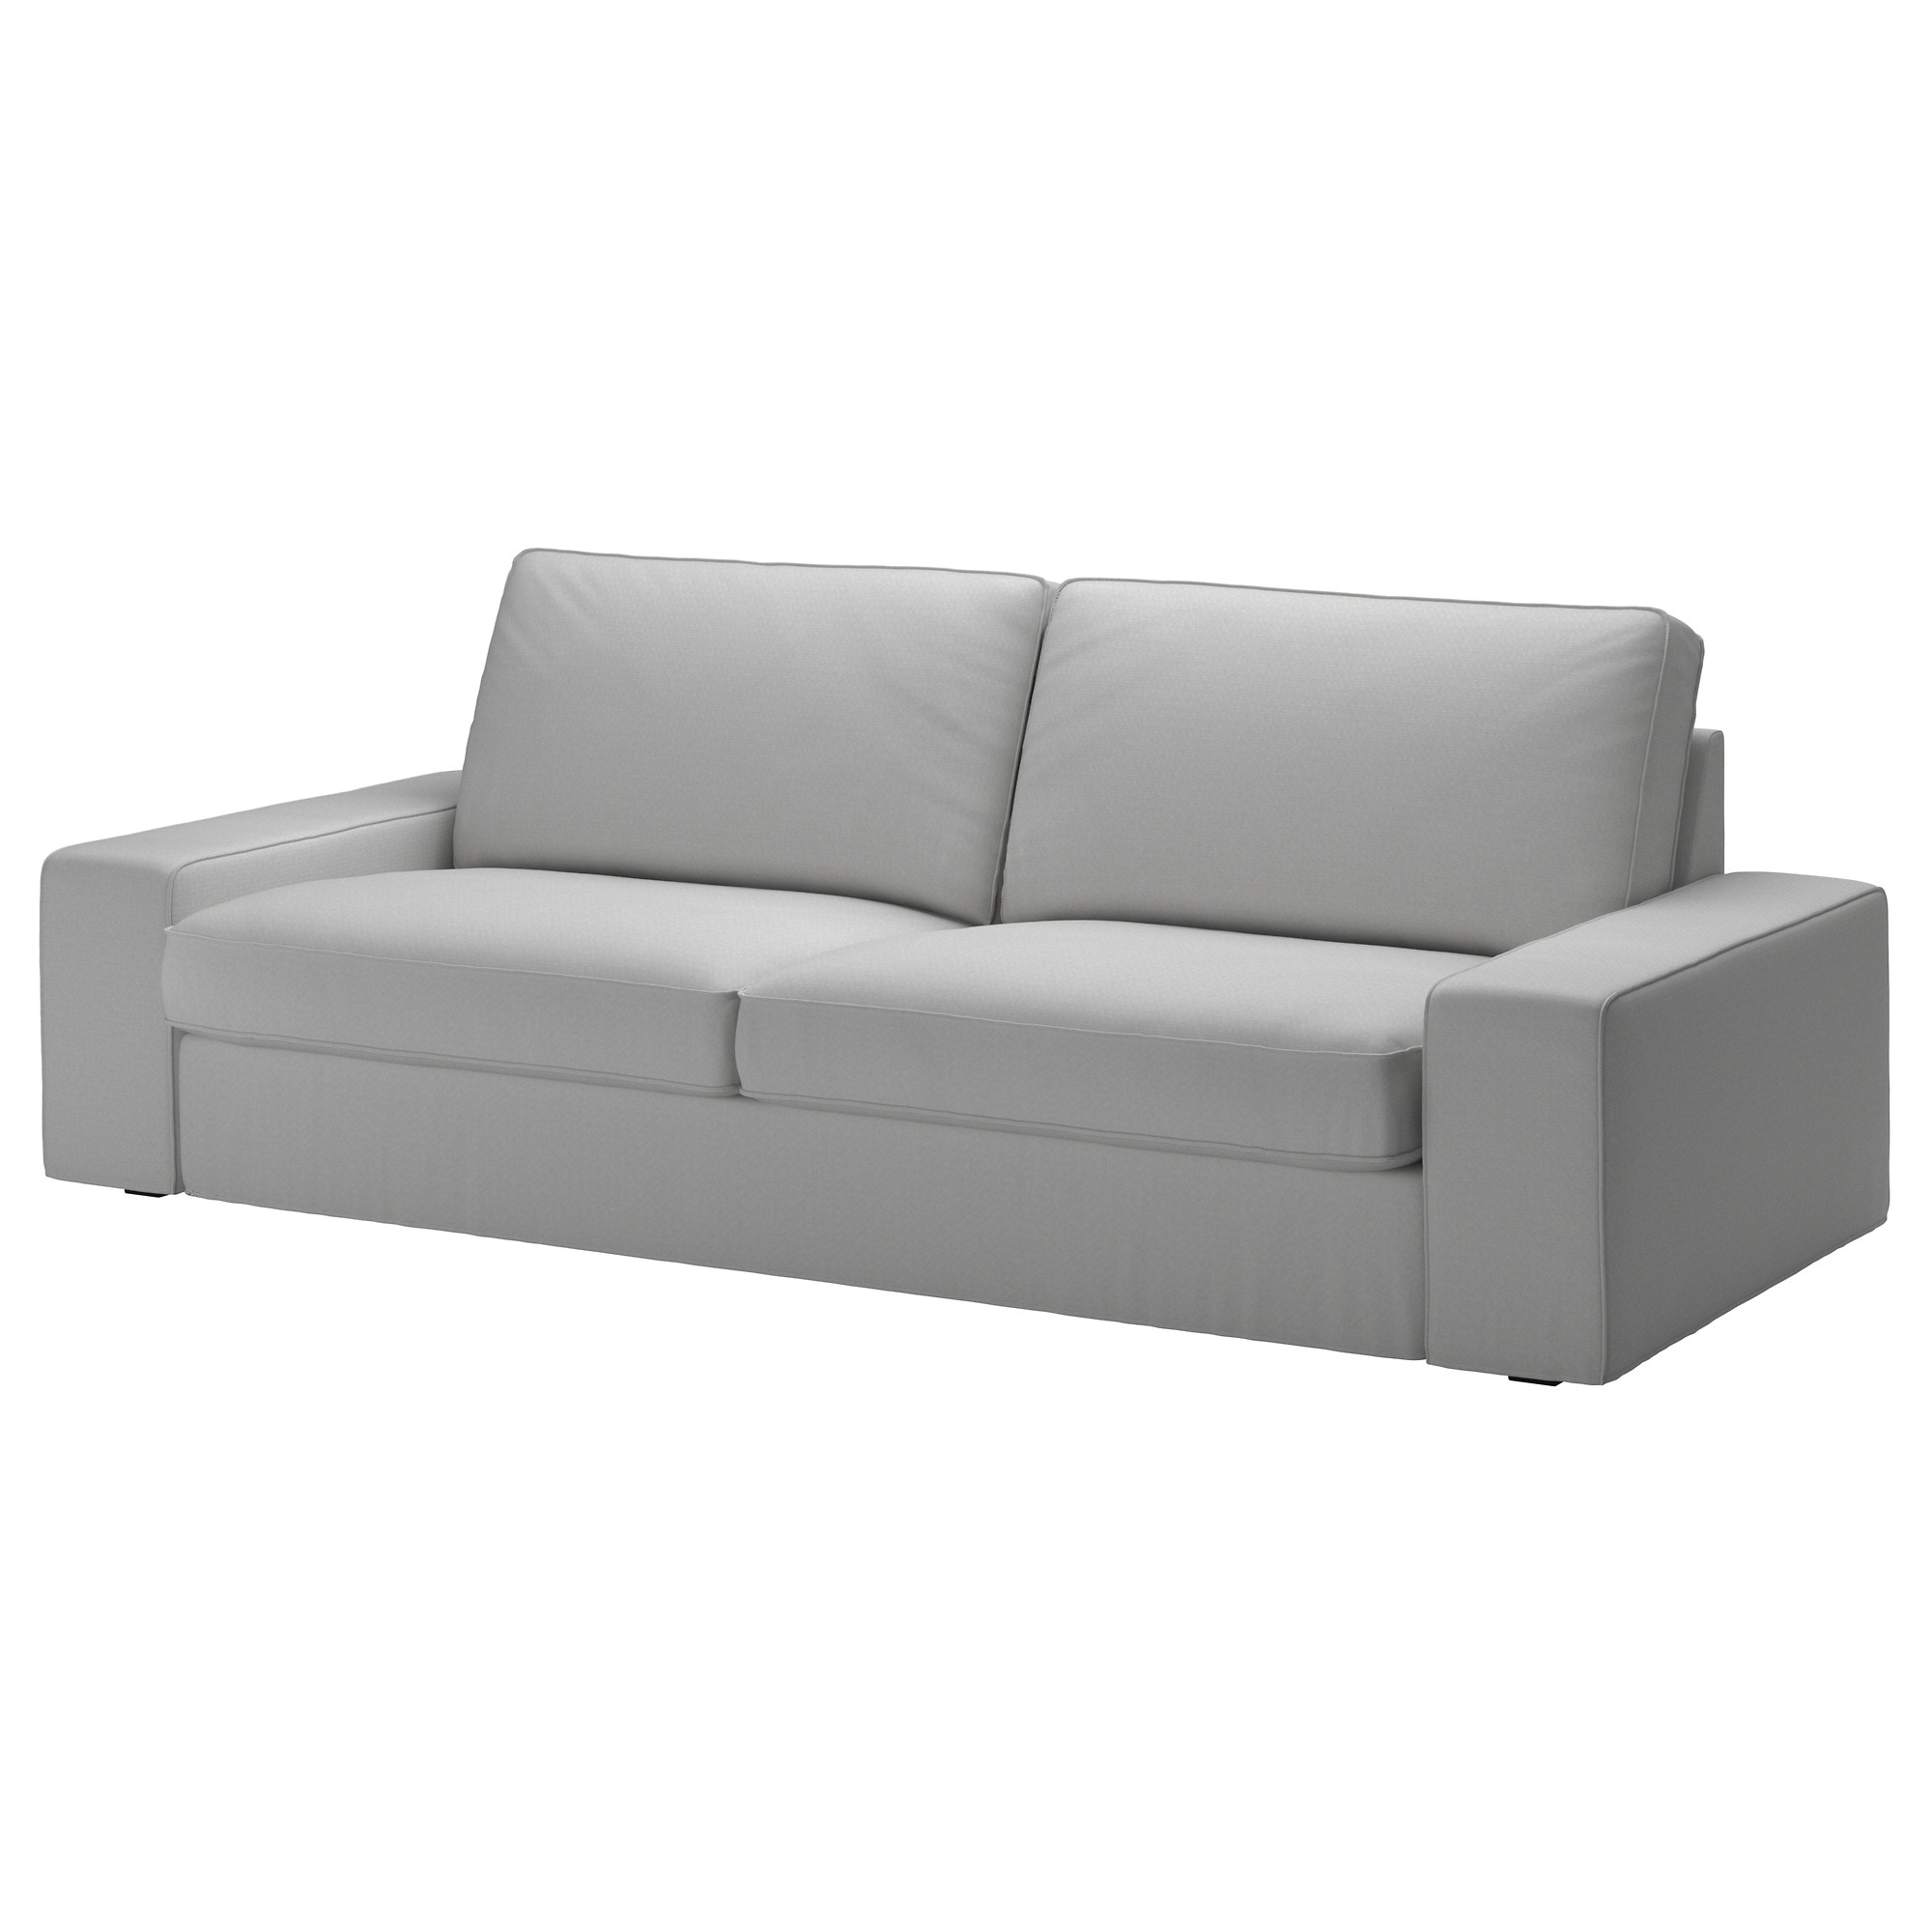 Sofa ikea klippan  KIVIK Sofa - Orrsta light gray - IKEA